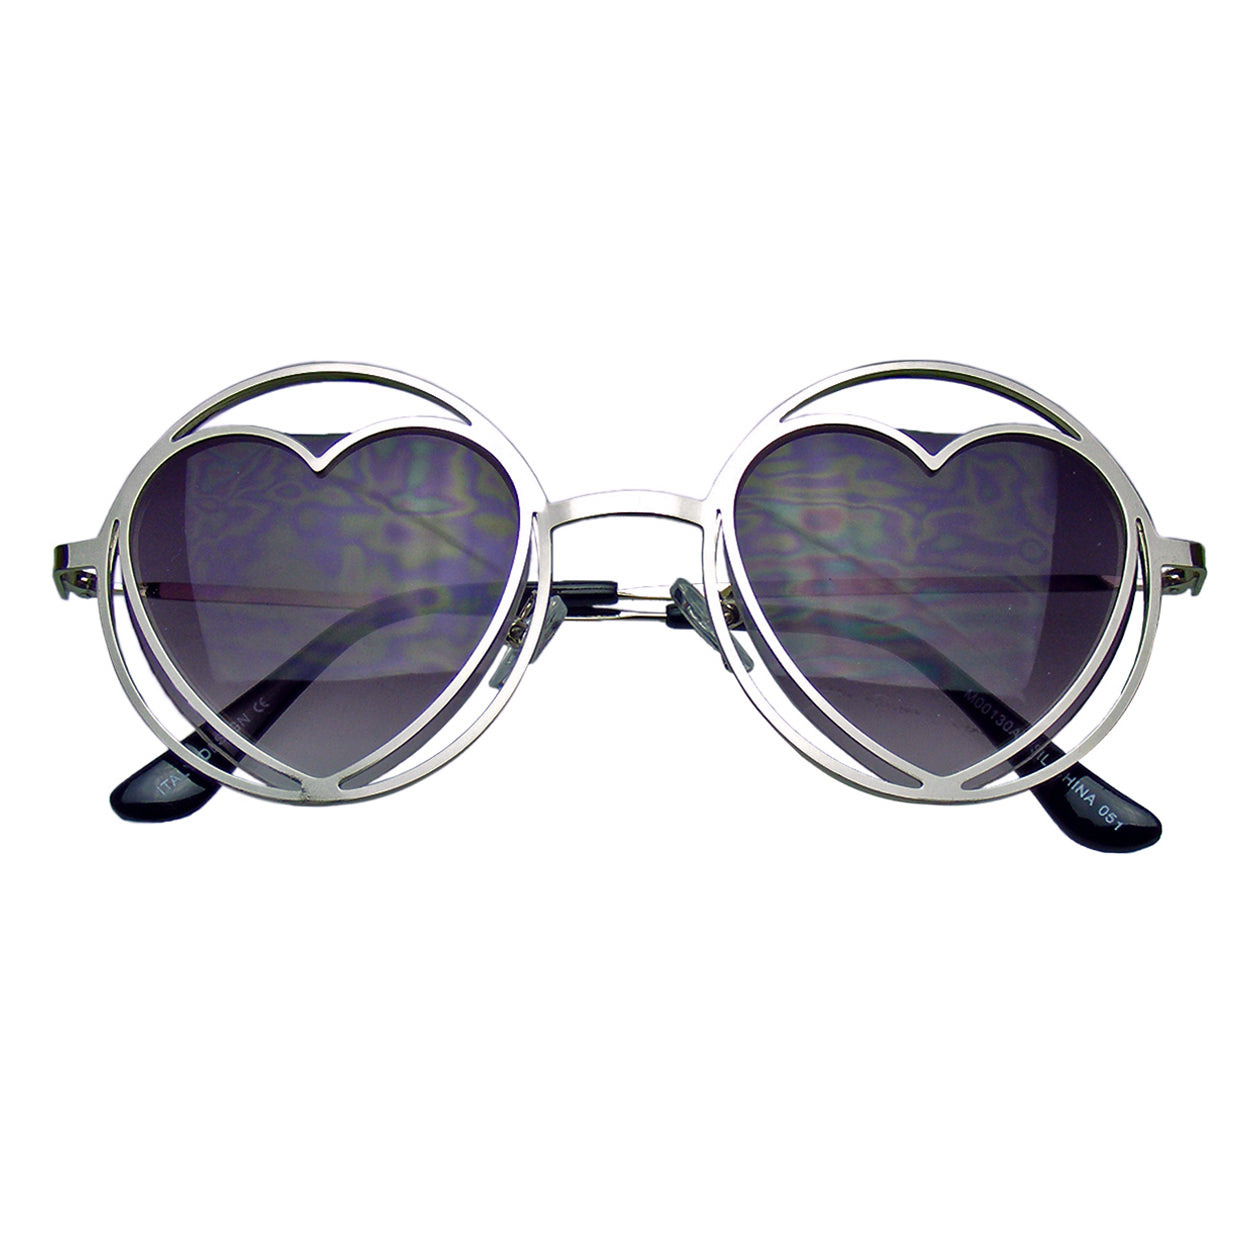 0113a04de92 Metal Heart Sunglasses Ebay